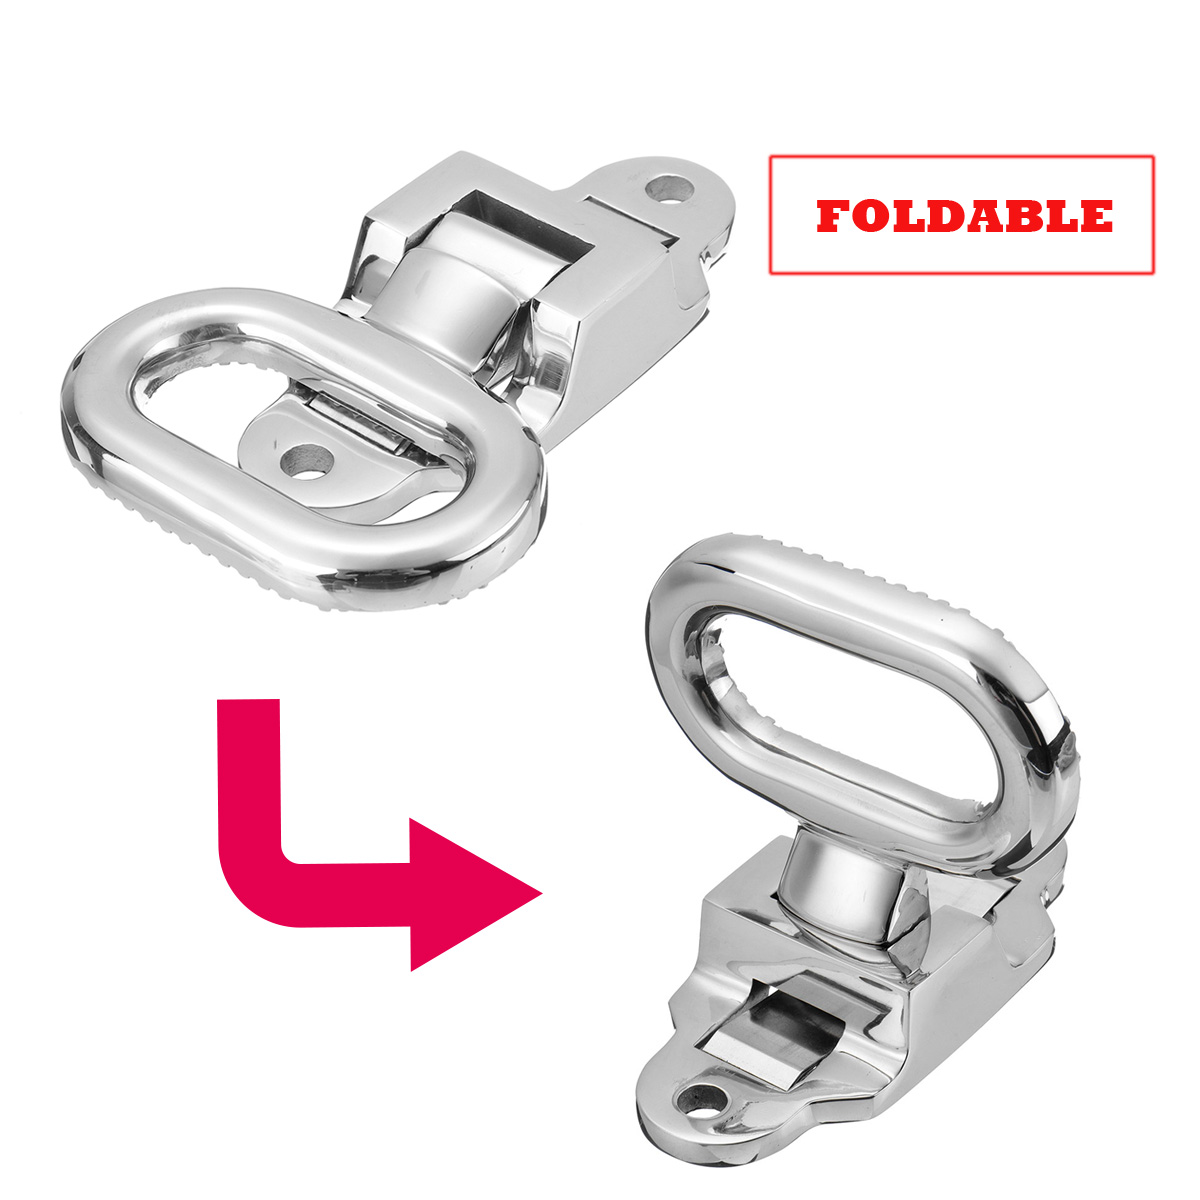 Folding Non-slip 316 Stainless Steel Folding Step Pedal Bracket For Marine Boat Yacht Car